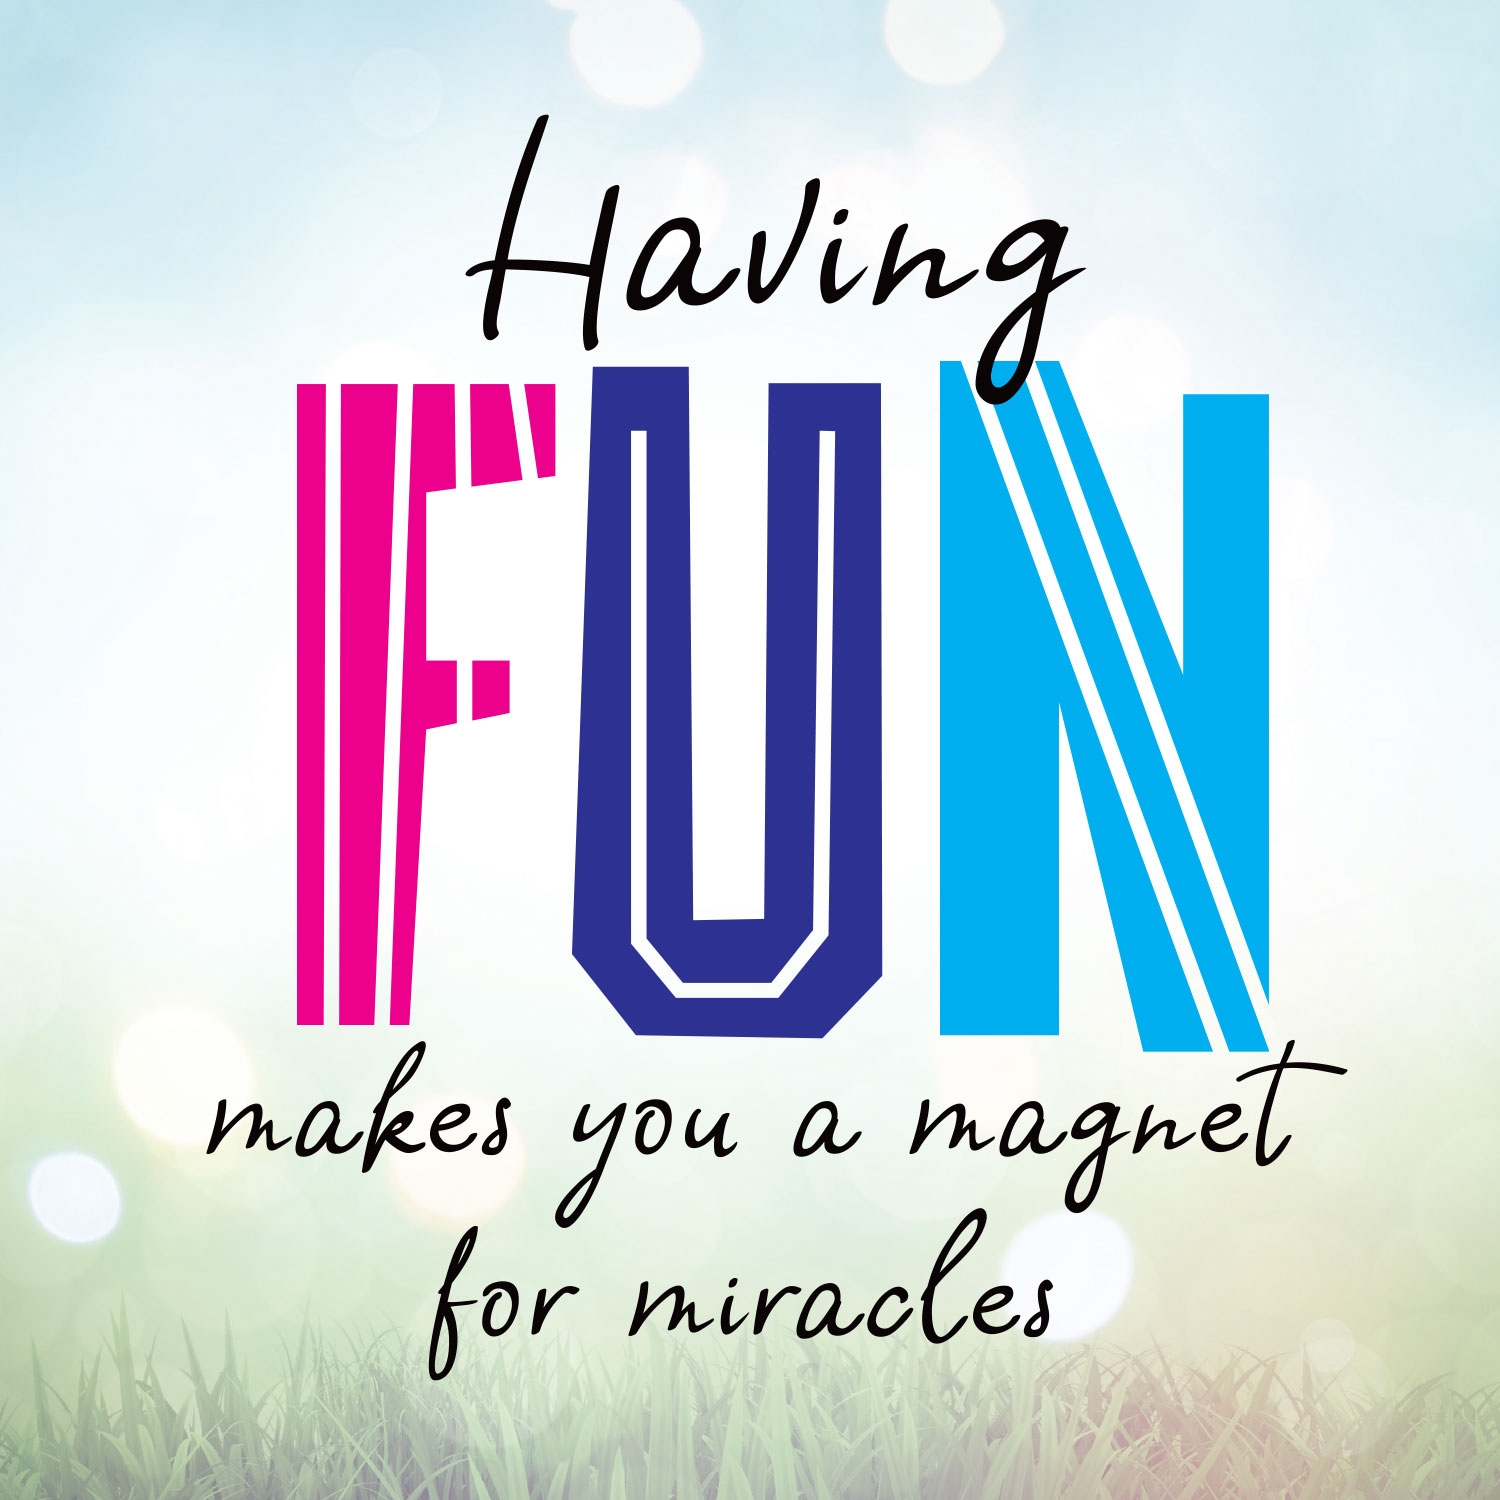 Having fun makes you a magnet for miracles | Super Attractor | Dream home